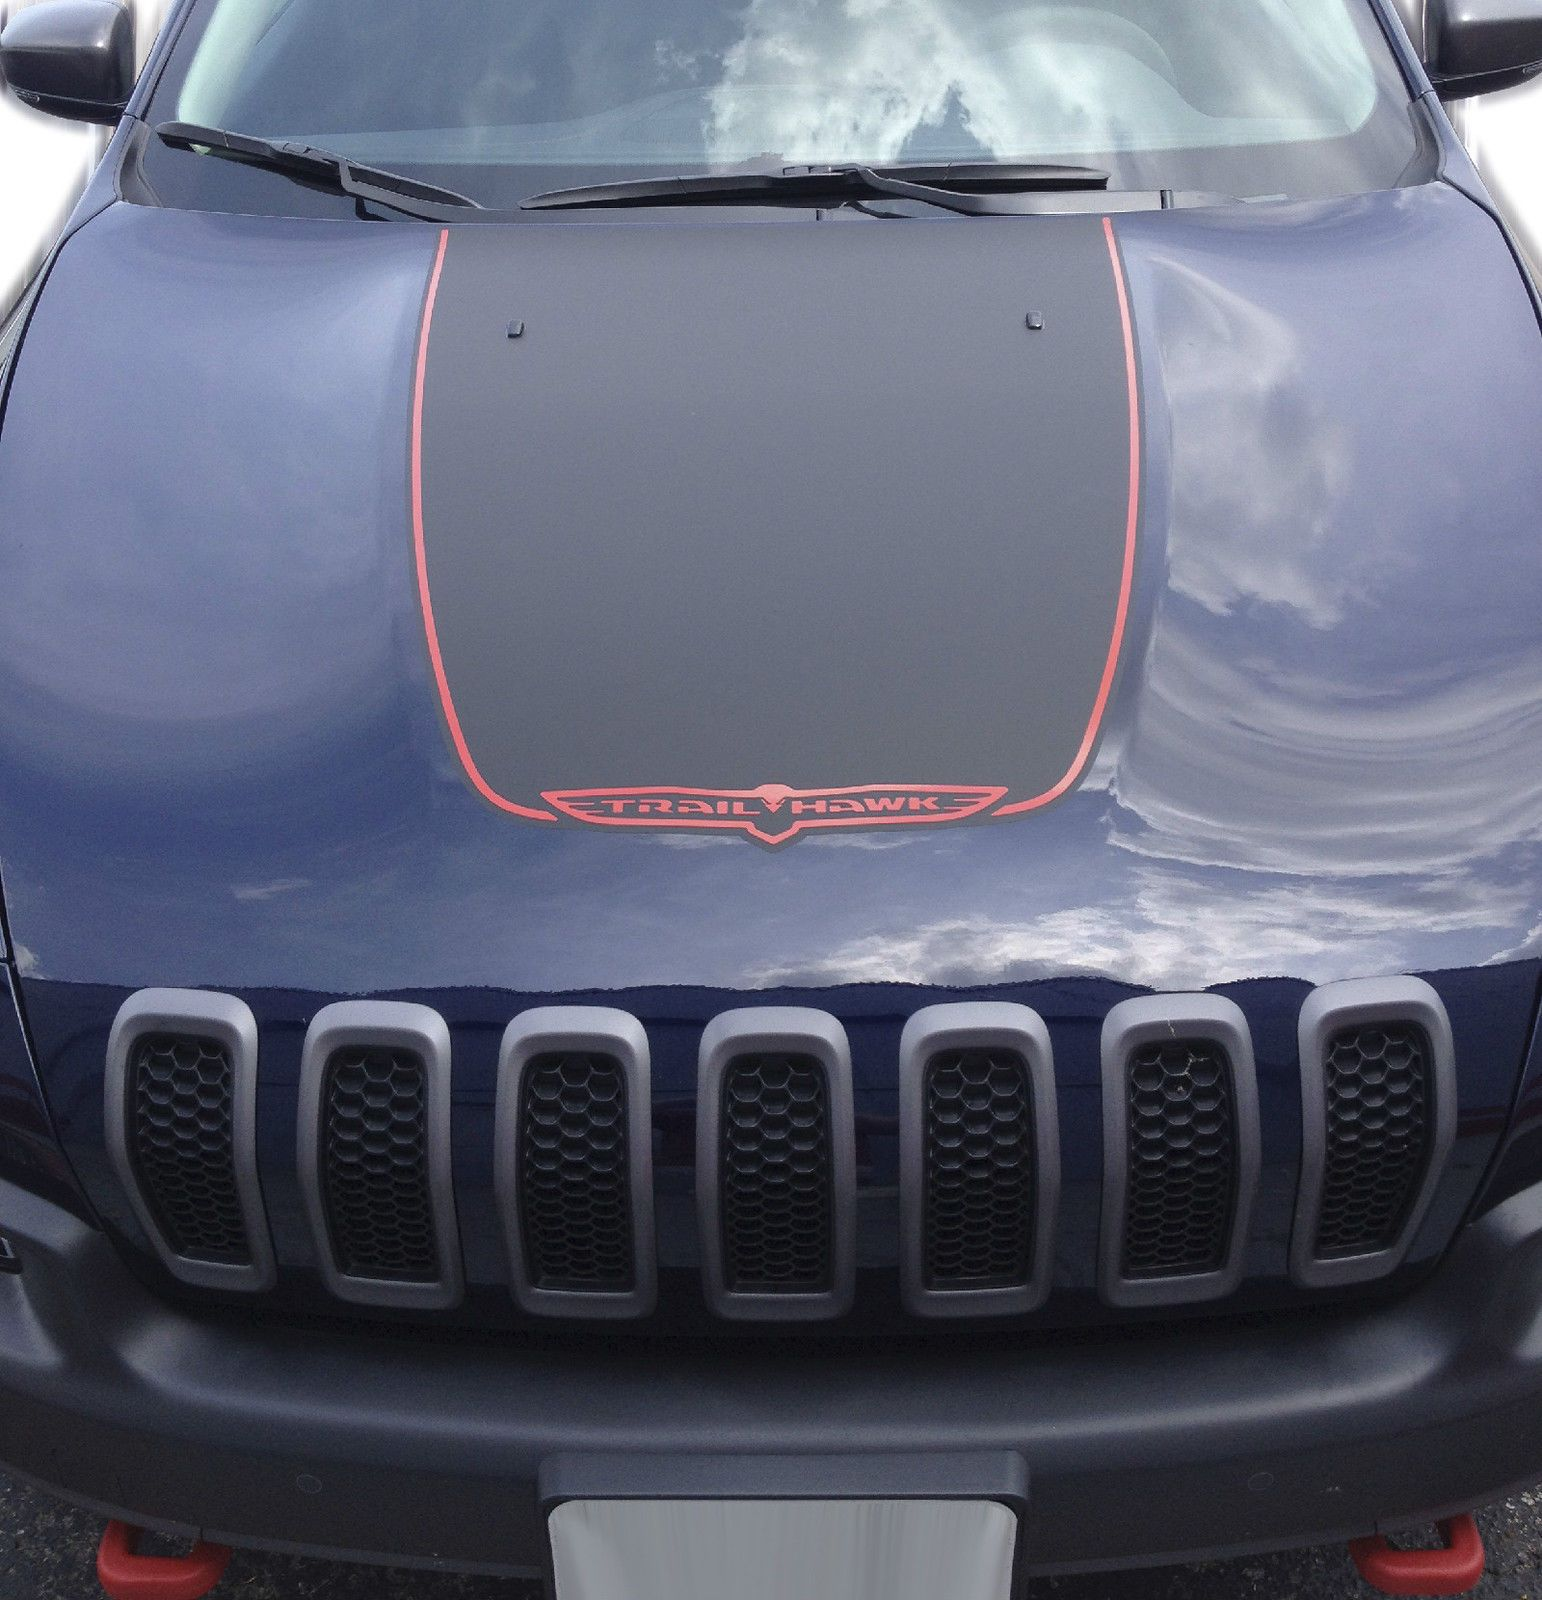 Custom Designed Matte Black Hood Vinyl Decal 2014 2015 Jeep Cherokee Trailhawk Cherokee Trailhawk Jeep Cherokee Trailhawk Jeep Trailhawk